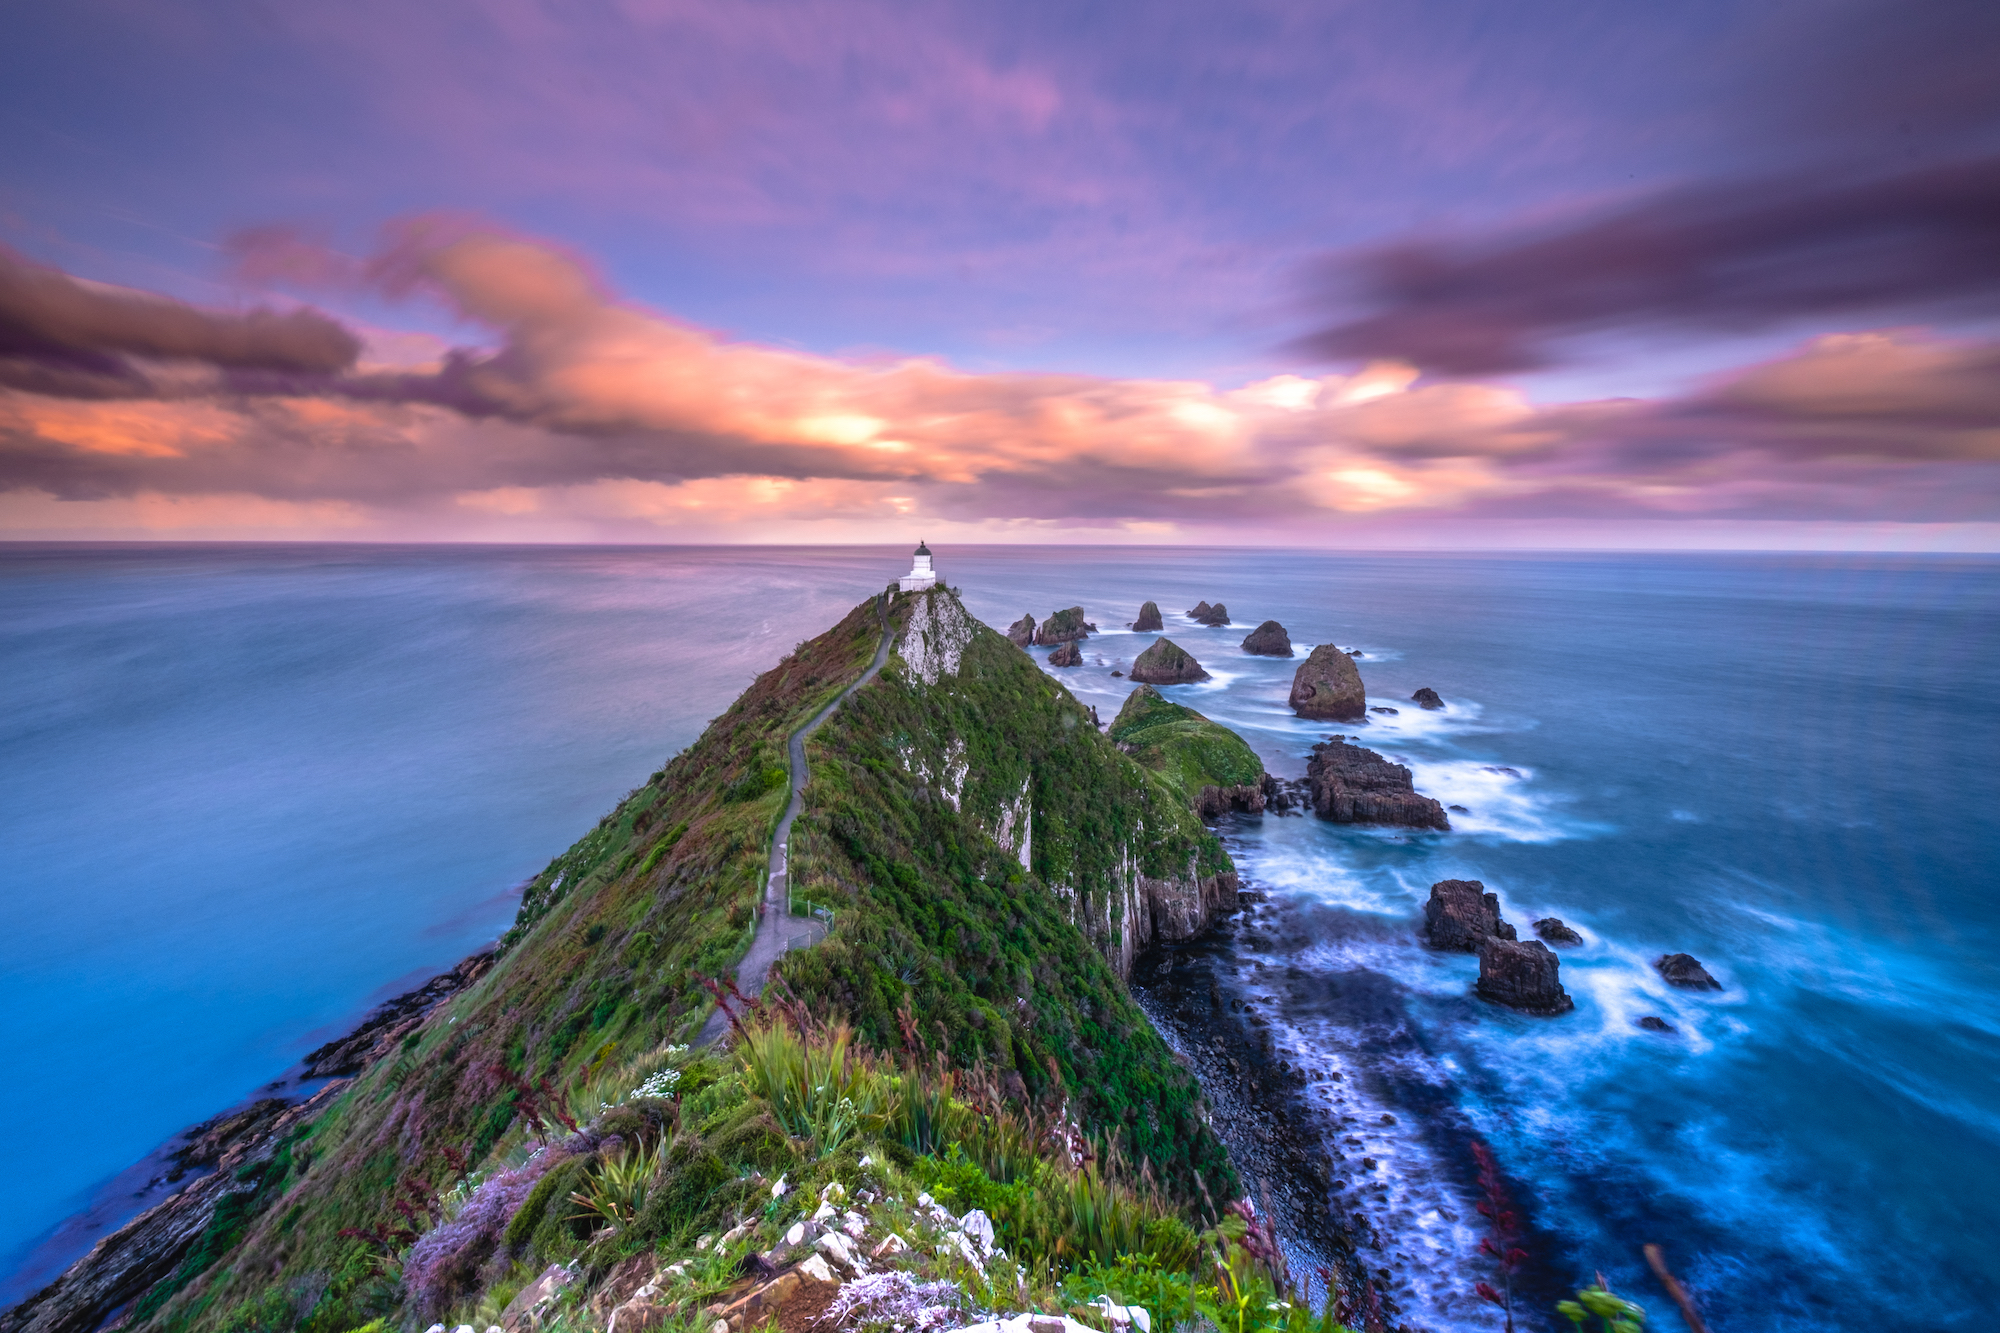 Colourful sunset at Nugget Point lighthouse; Otago, New Zealand